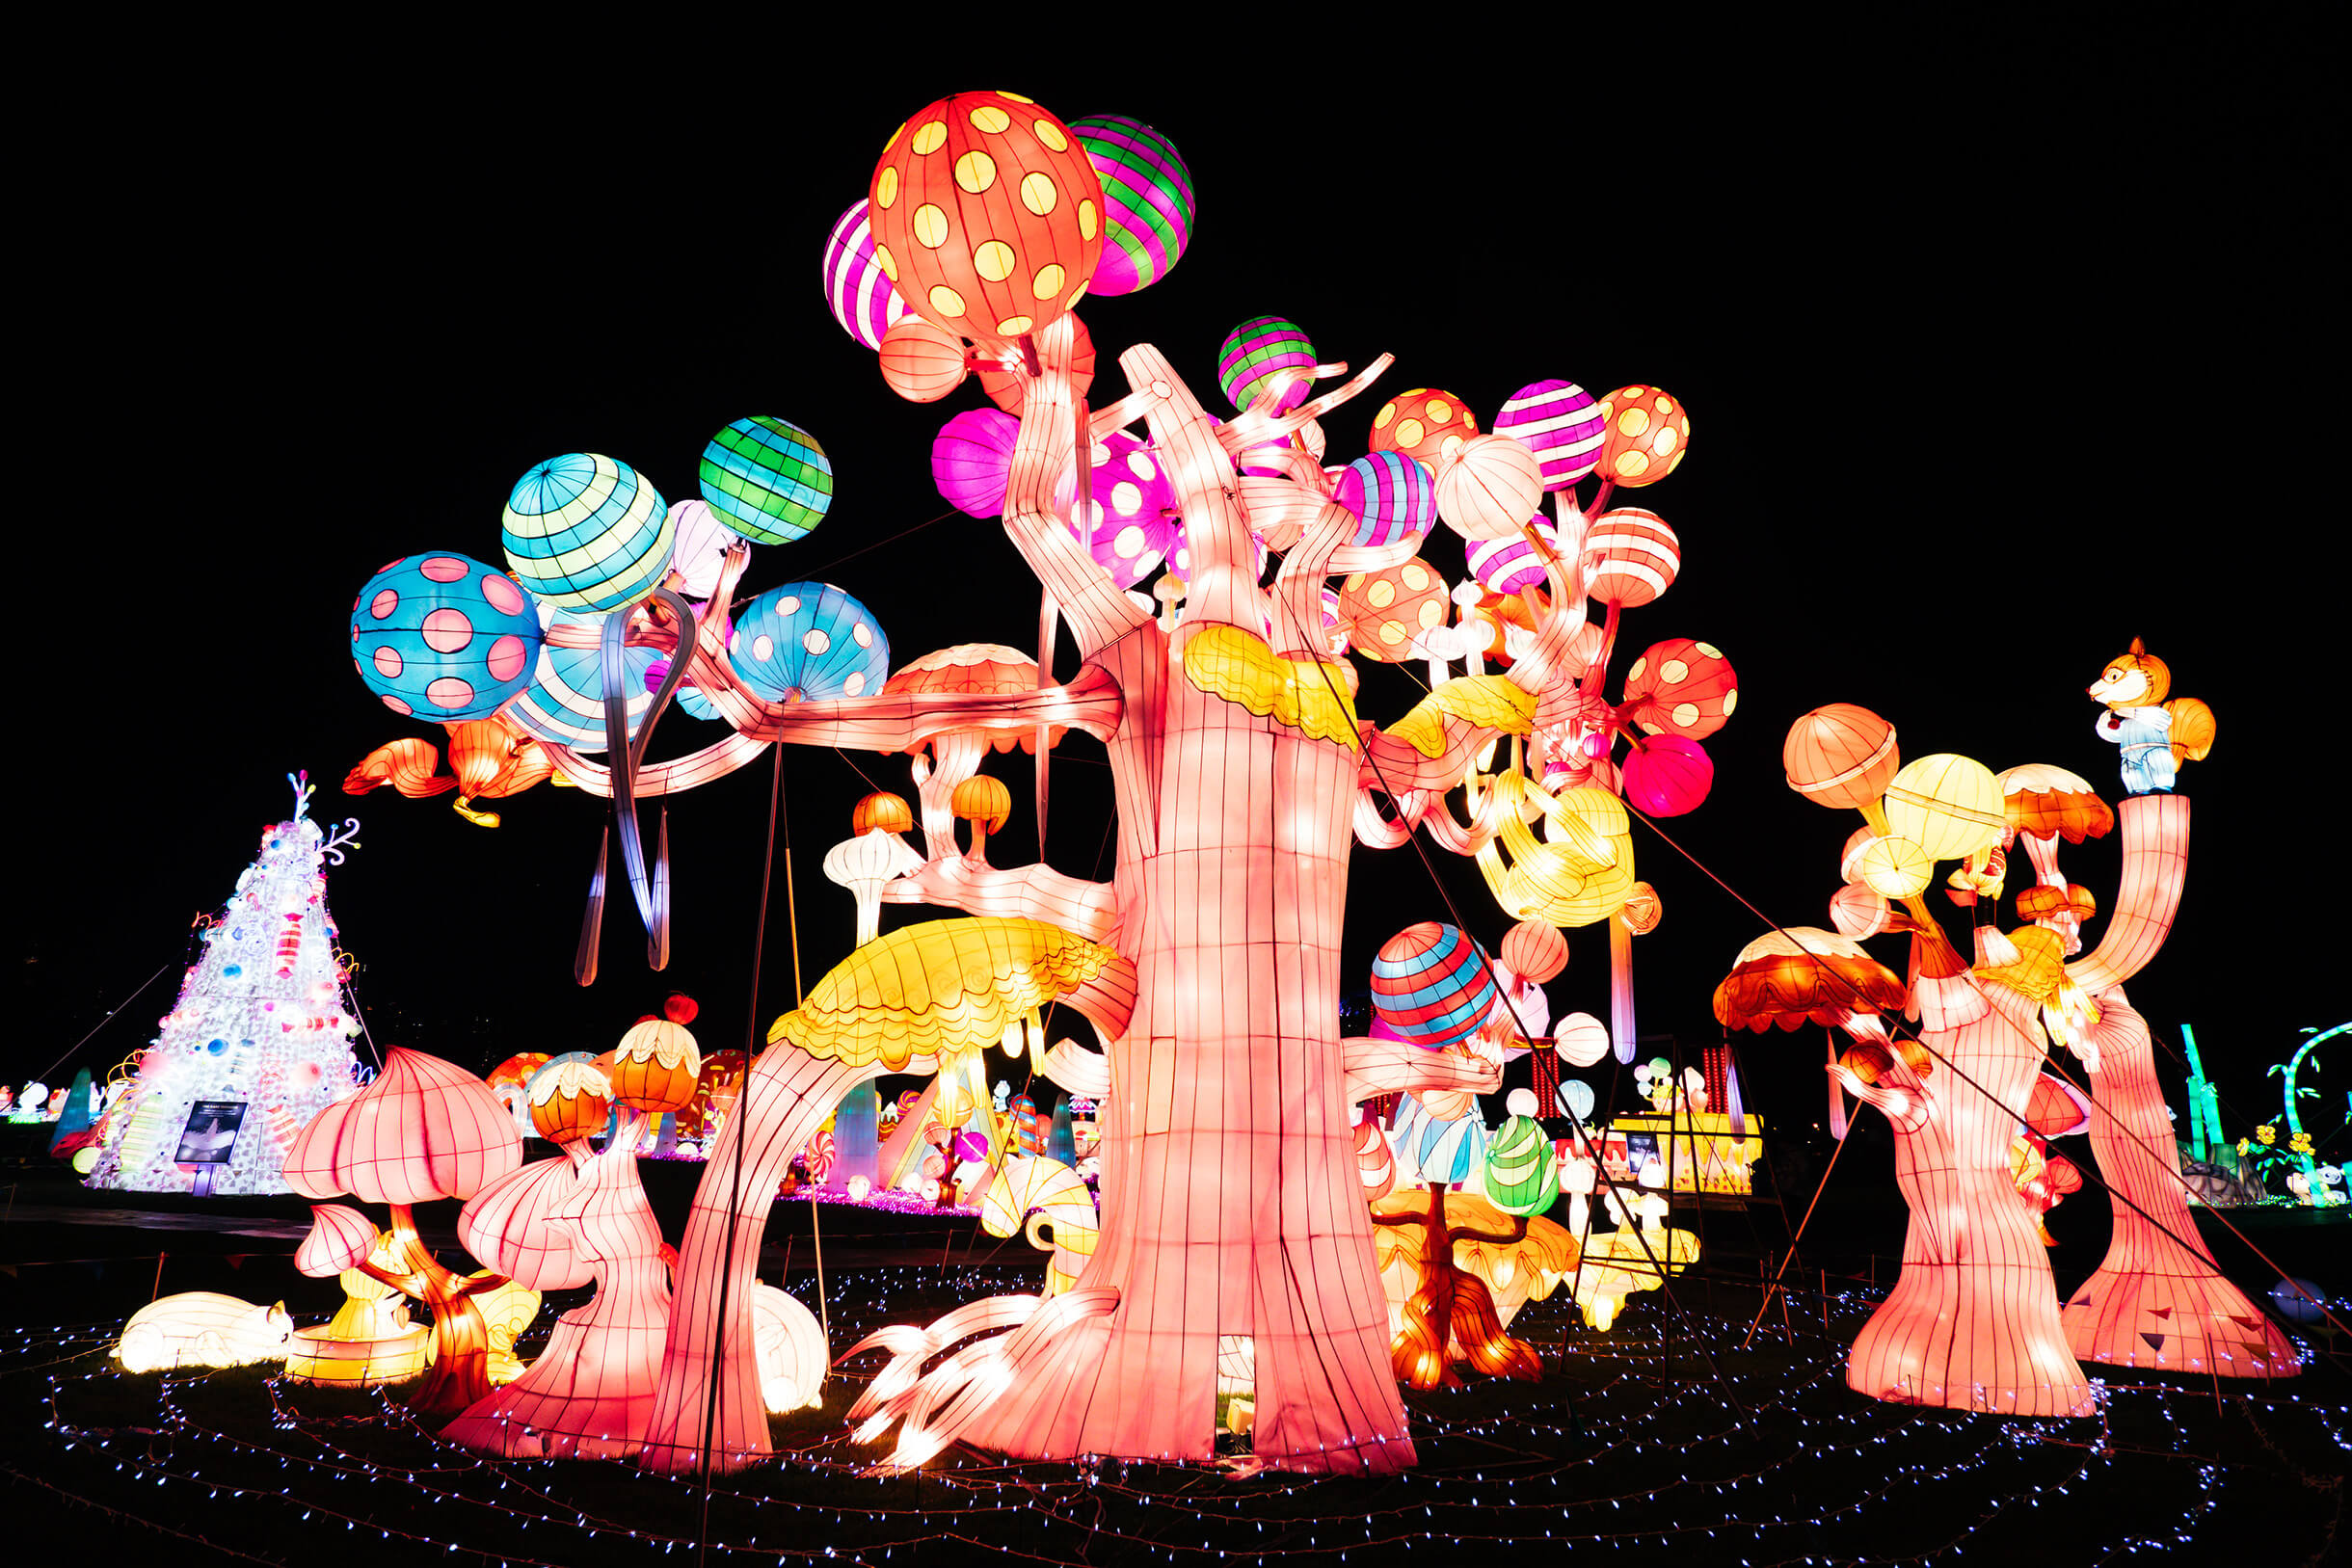 sweet-forest-the-sweet-dream-light-arts-luminocity-festival-rendered-image